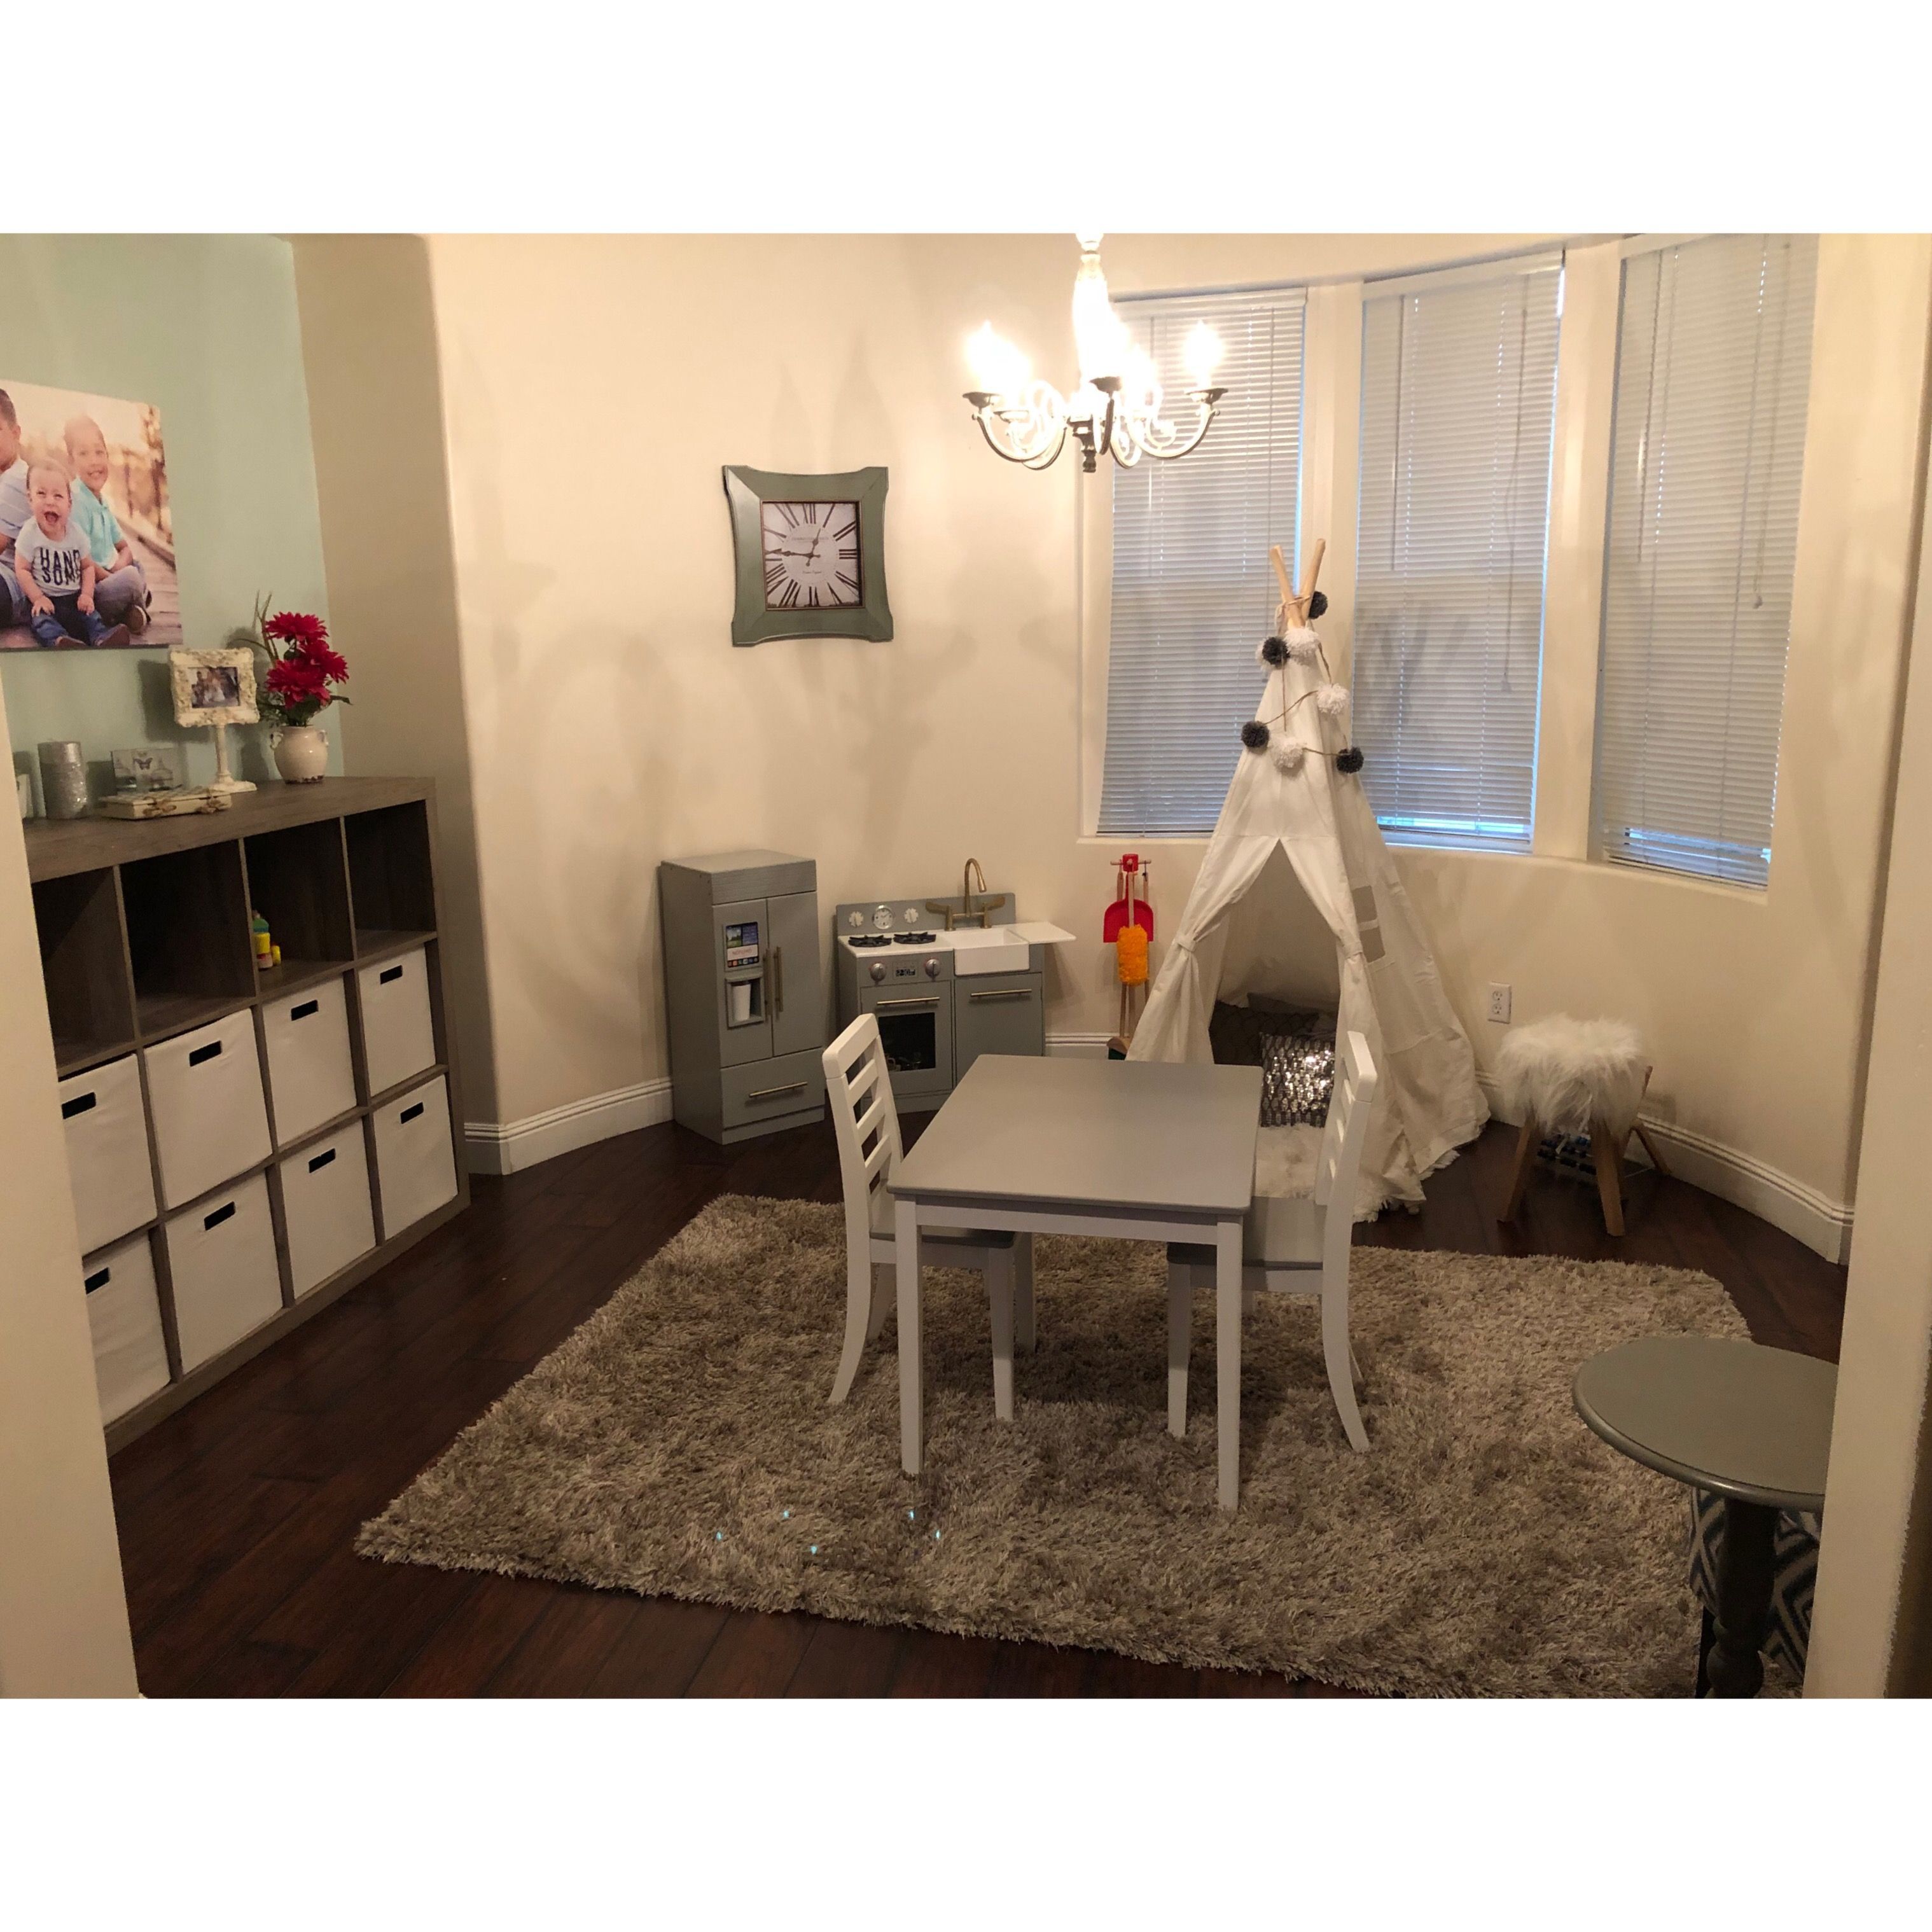 Kids Play Area, Teepee, Gray And White, Playroom, Cube